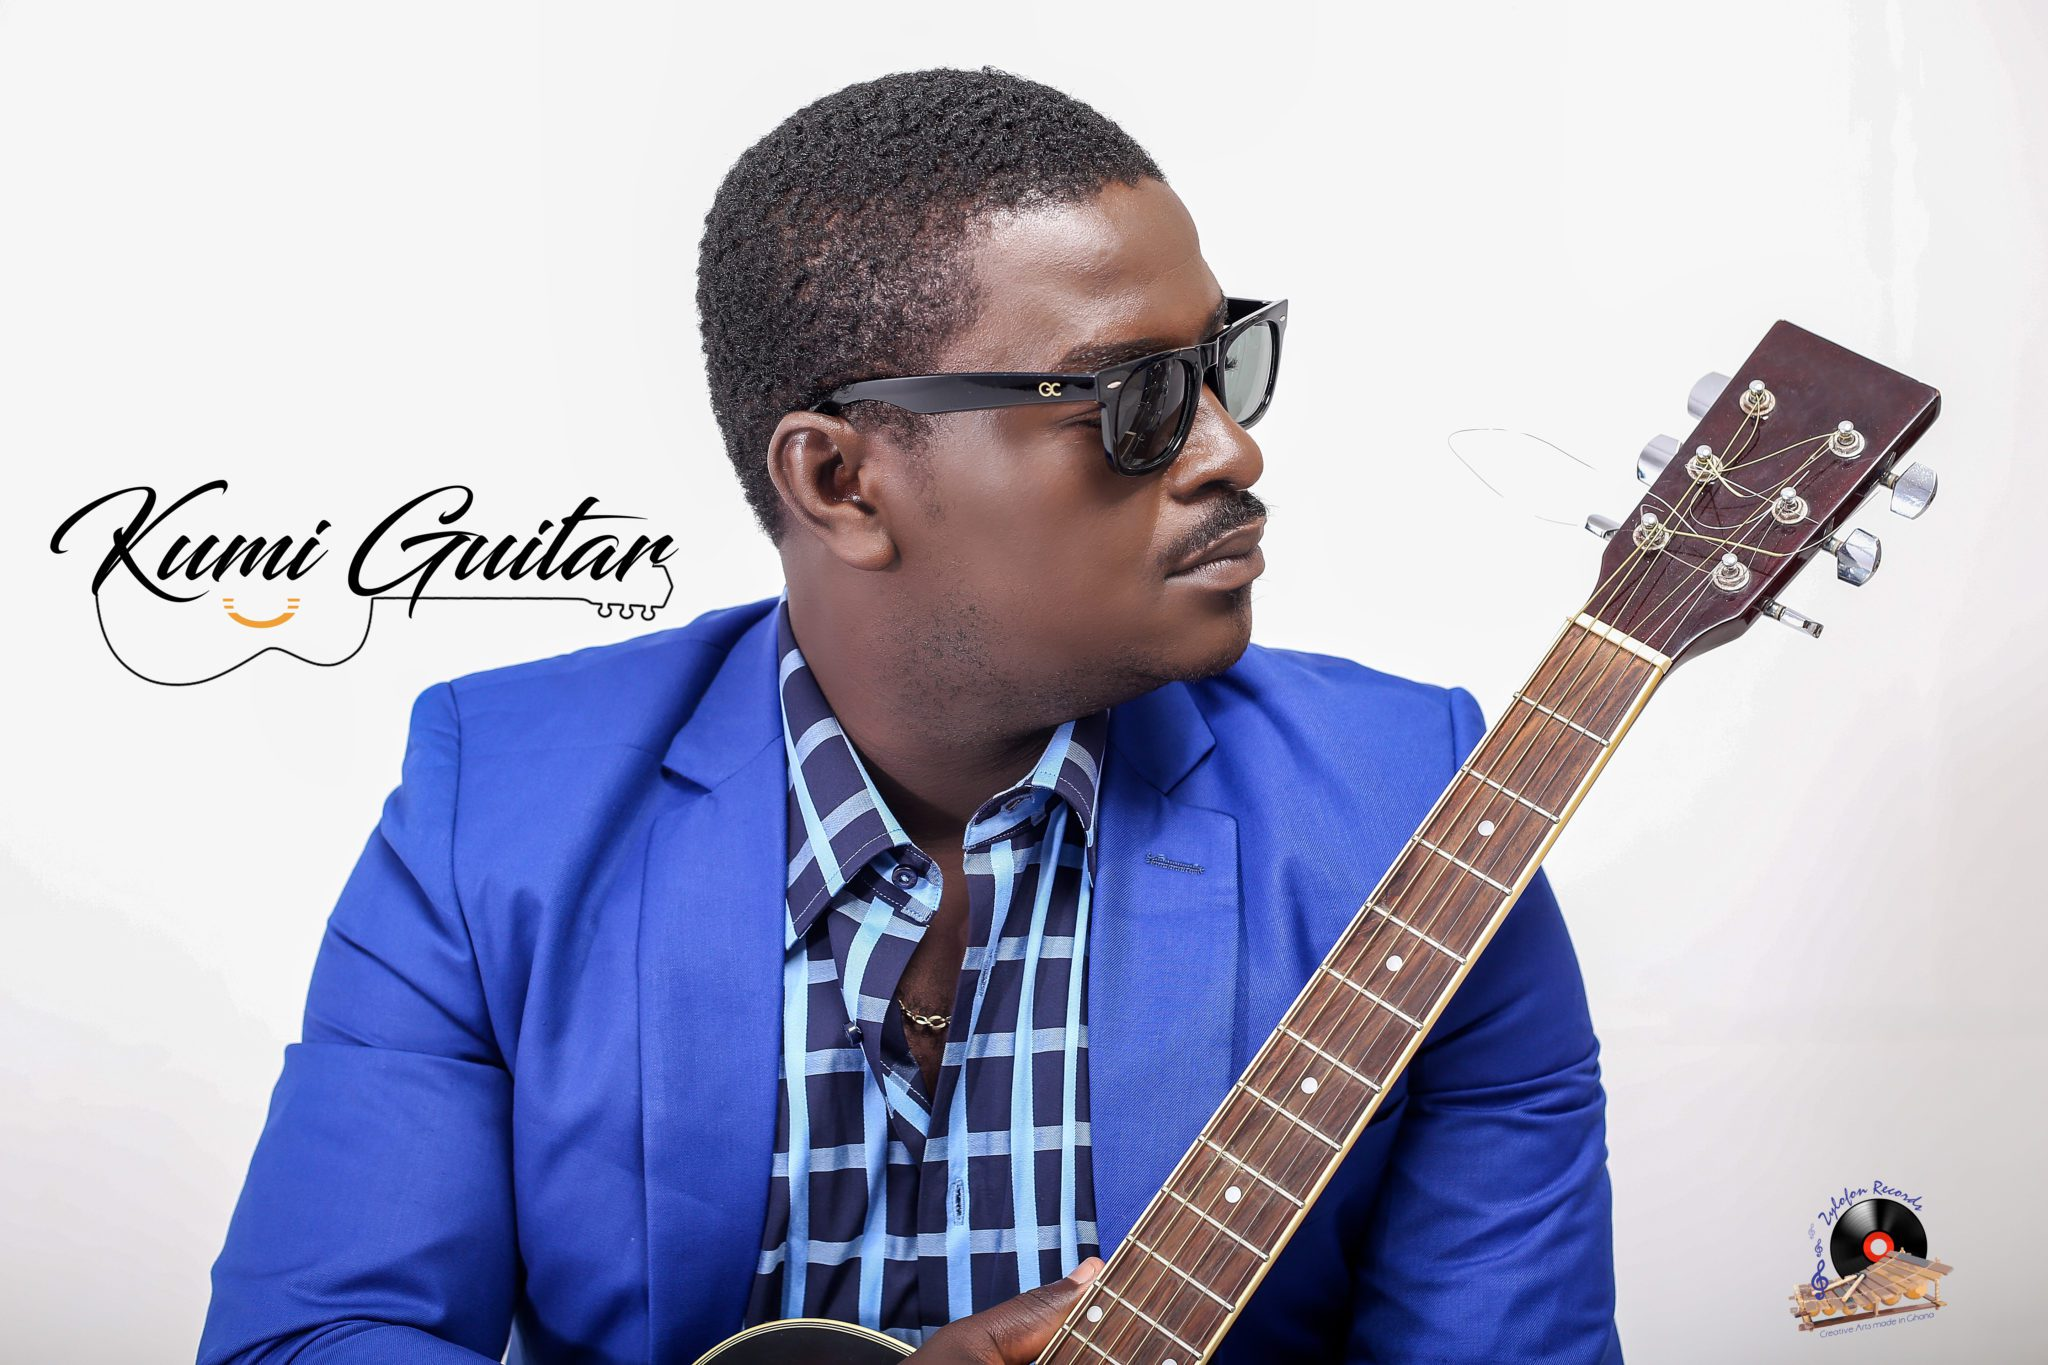 Kumi Guitar talks about his 3 children and their mothers